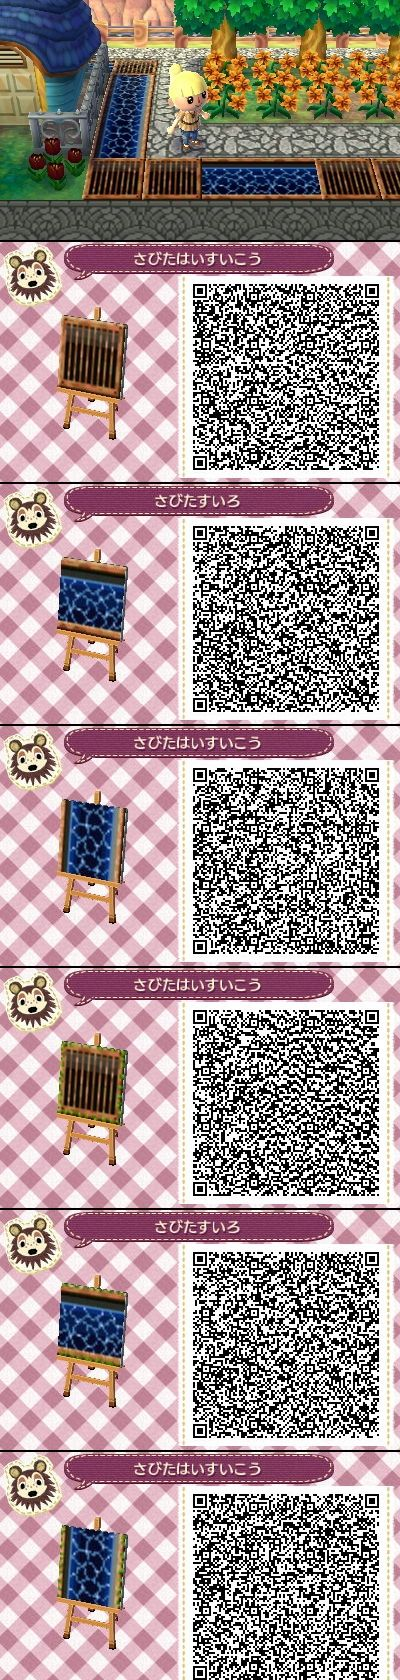 55 best animal crossing new leaf qr codes for paths for Acnl boden qr codes